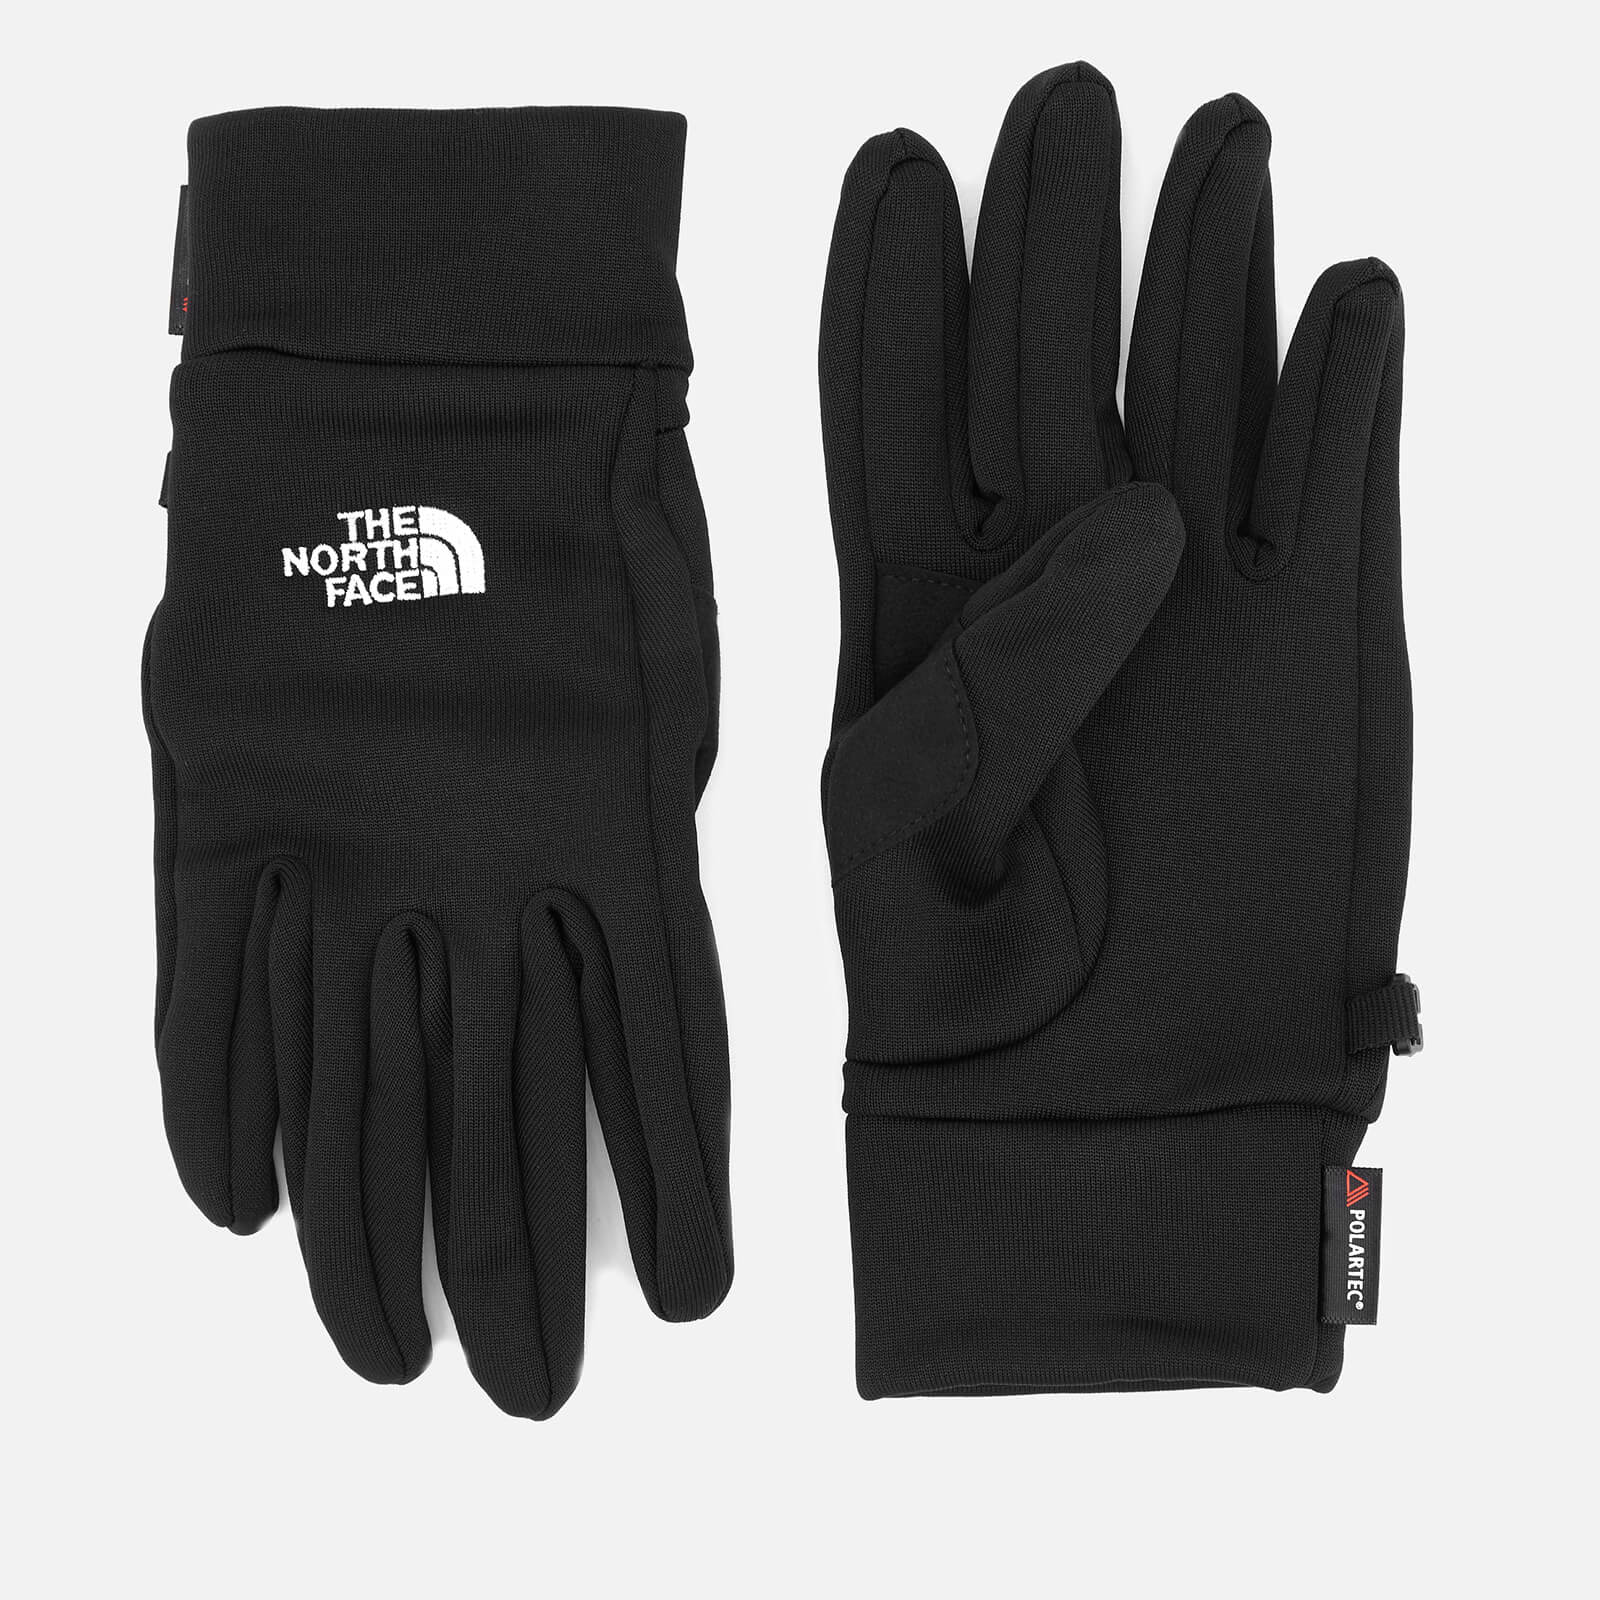 0a860bfc6 The North Face Men's Power Stretch Gloves - TNF Black